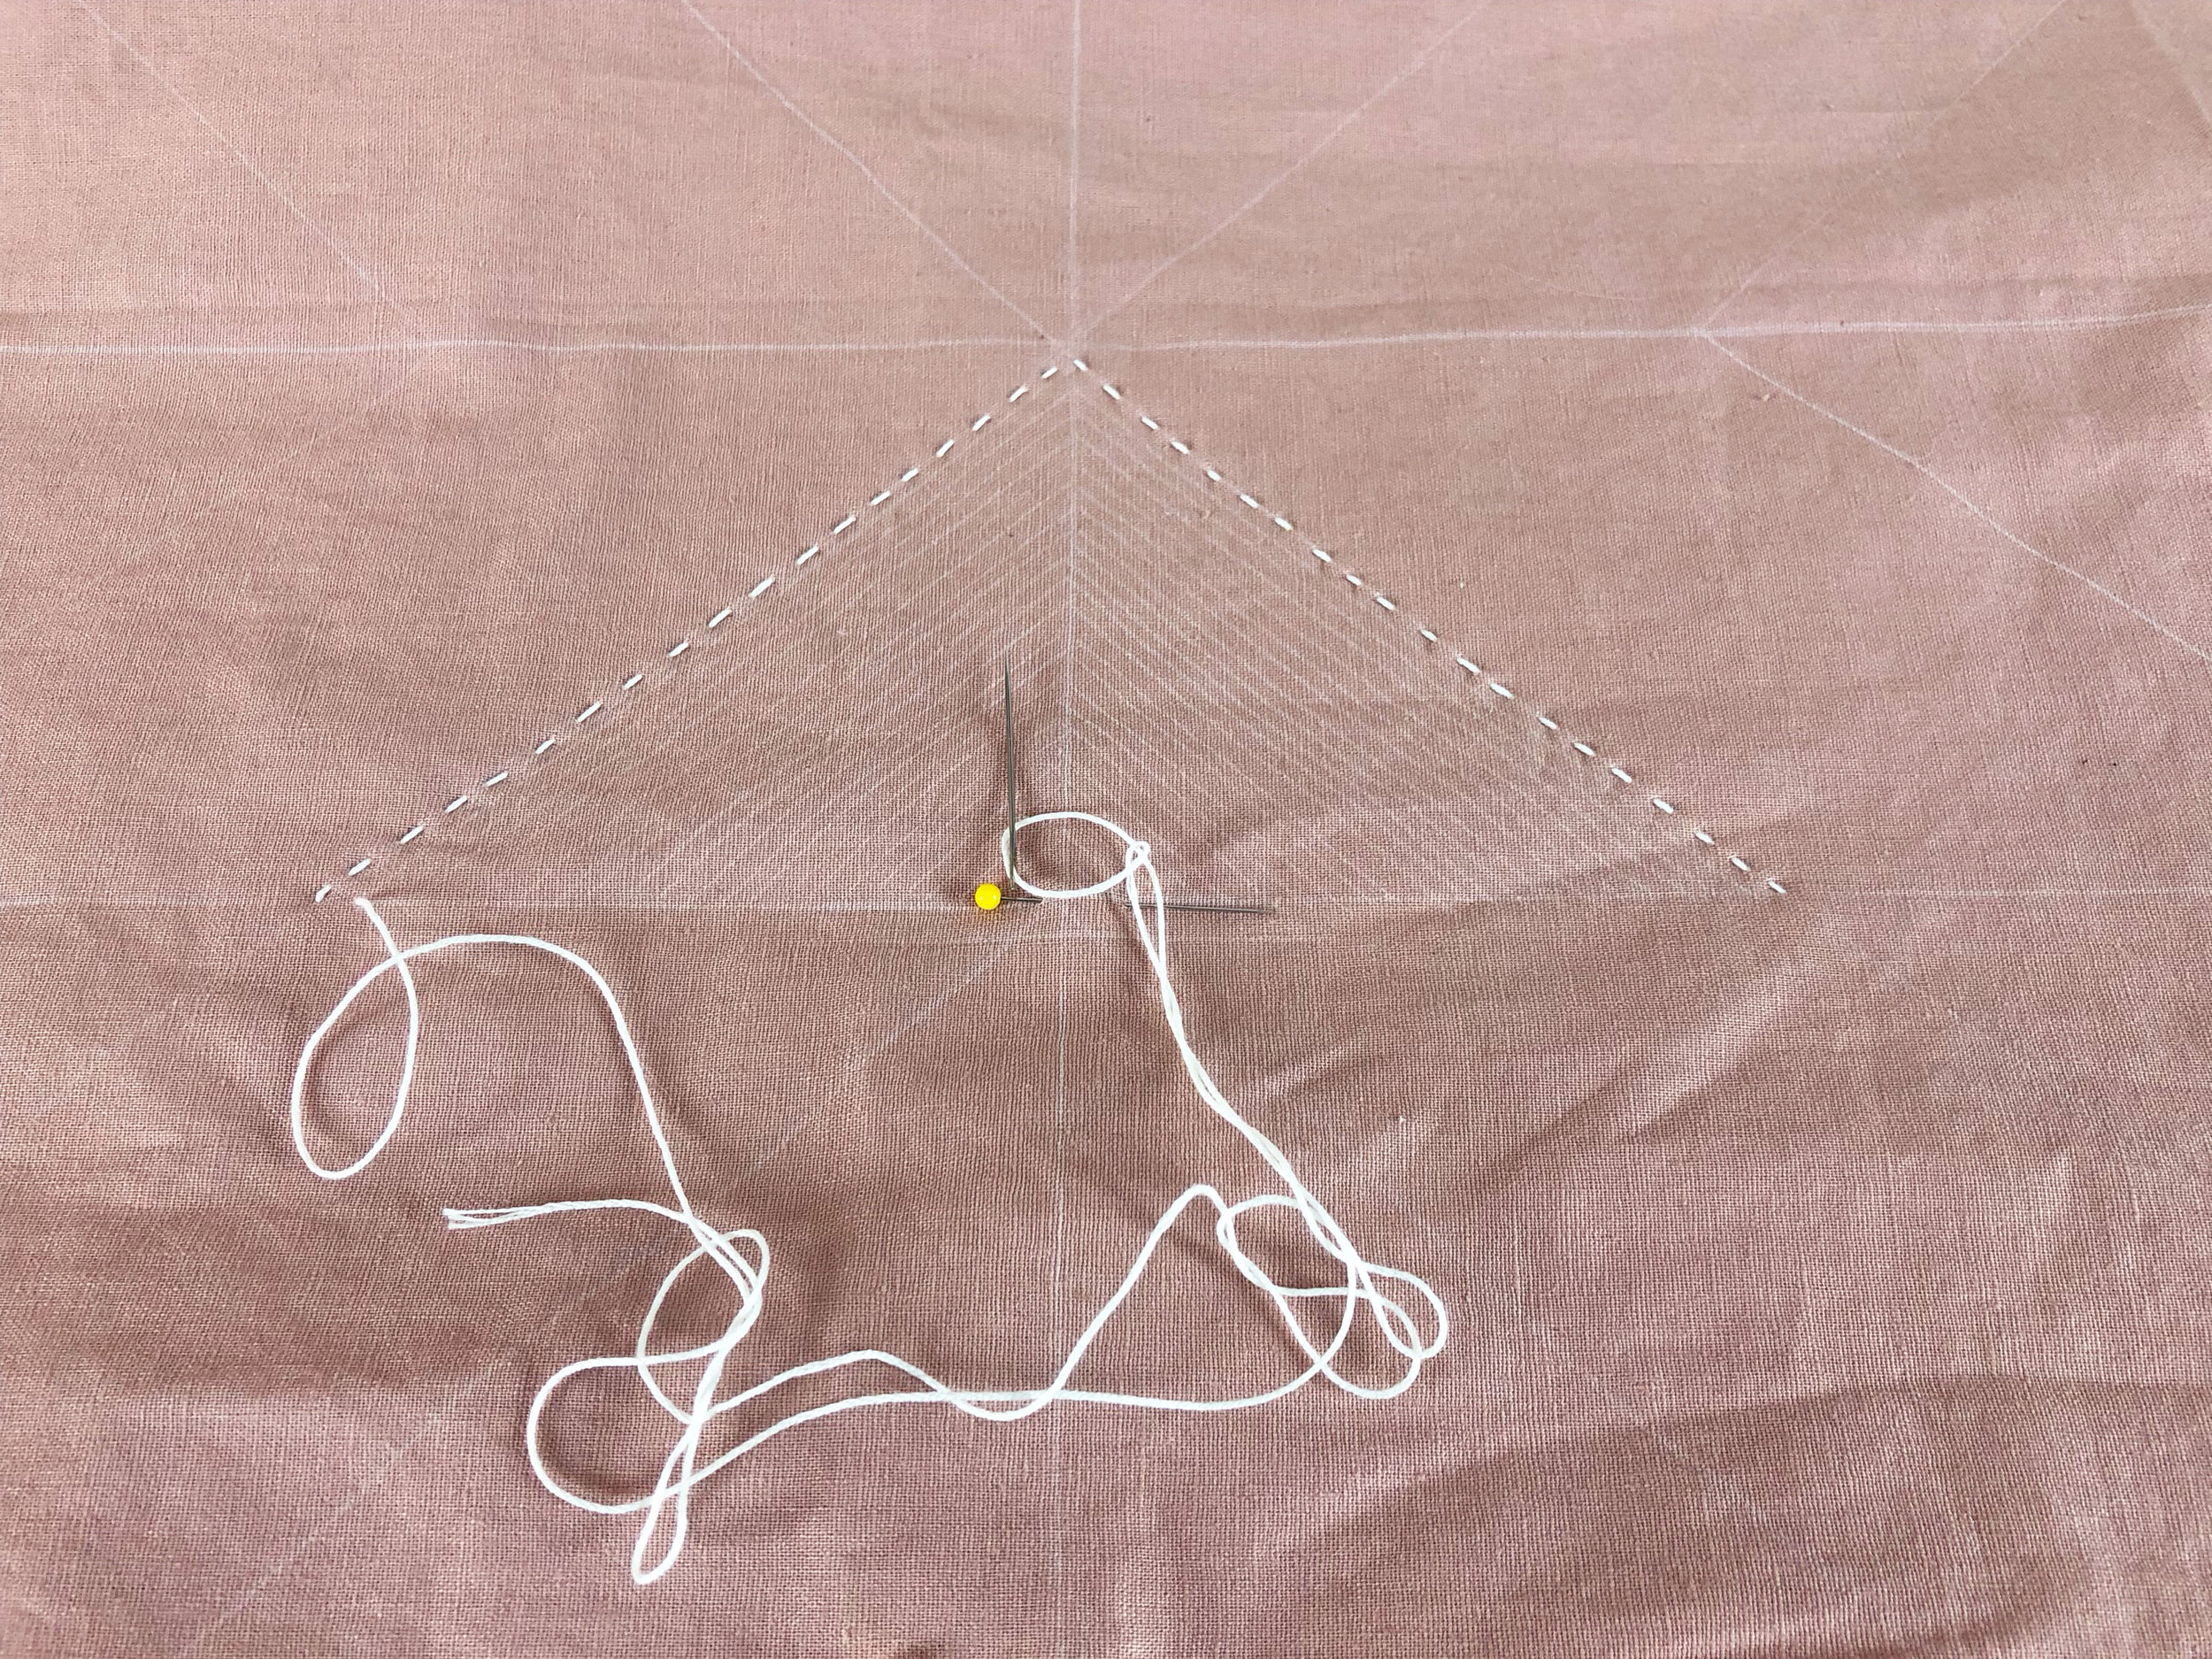 - - Stitch through all layers- Stitch length is according to your preference. The example pictured has stitches about 3/8